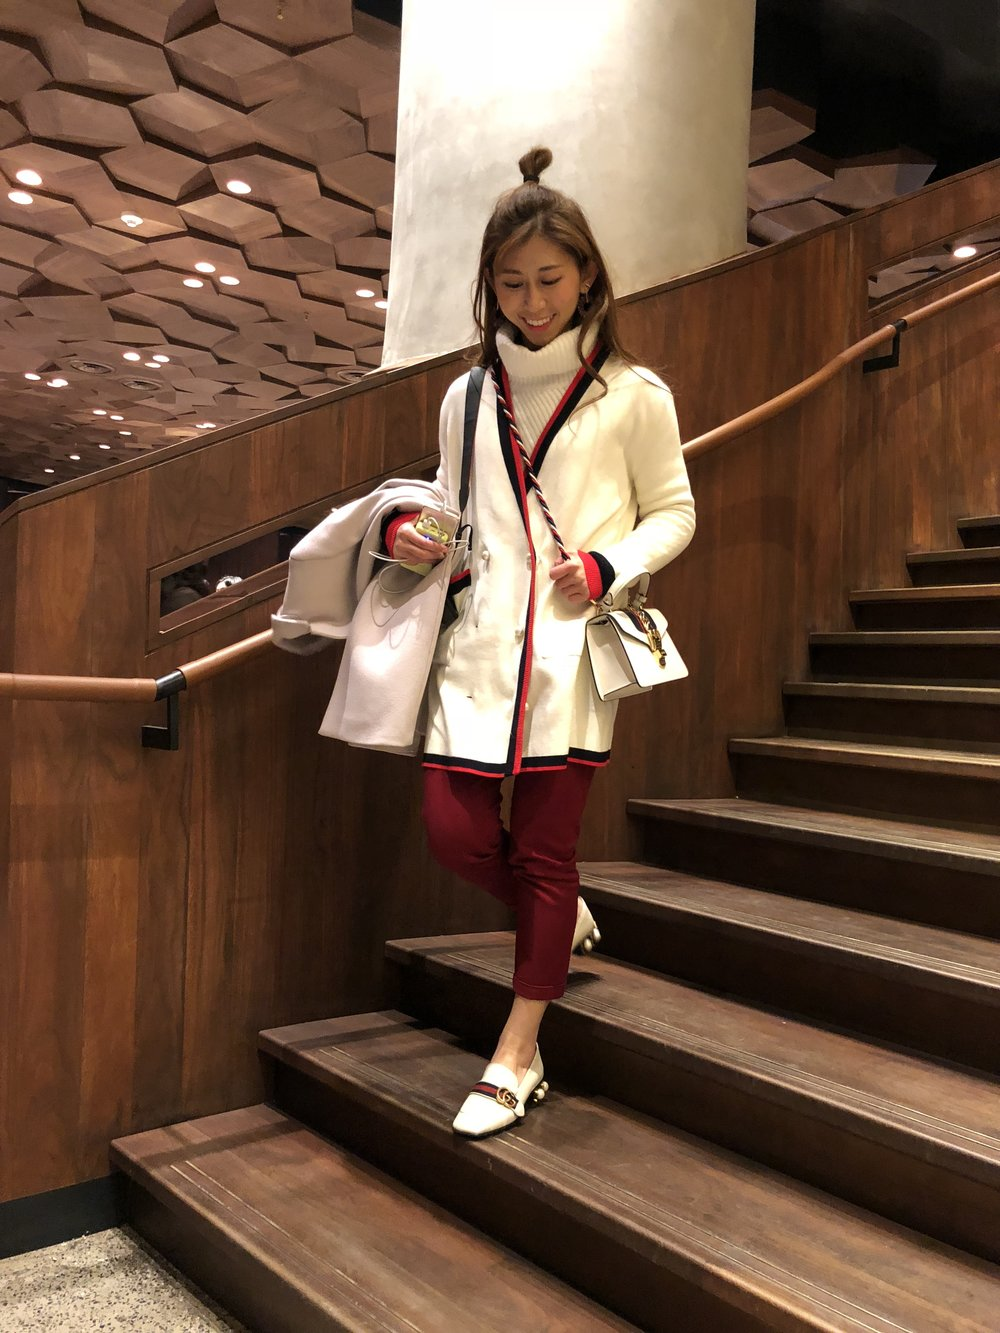 White turtleneck from Japan /  Zara double breasted jacket with pearl buttons  / Giordano red chino /  Gucci leather mid-heel loafers (white)  /  Gucci Sylvie leather mini bag  / Pennyblack coat